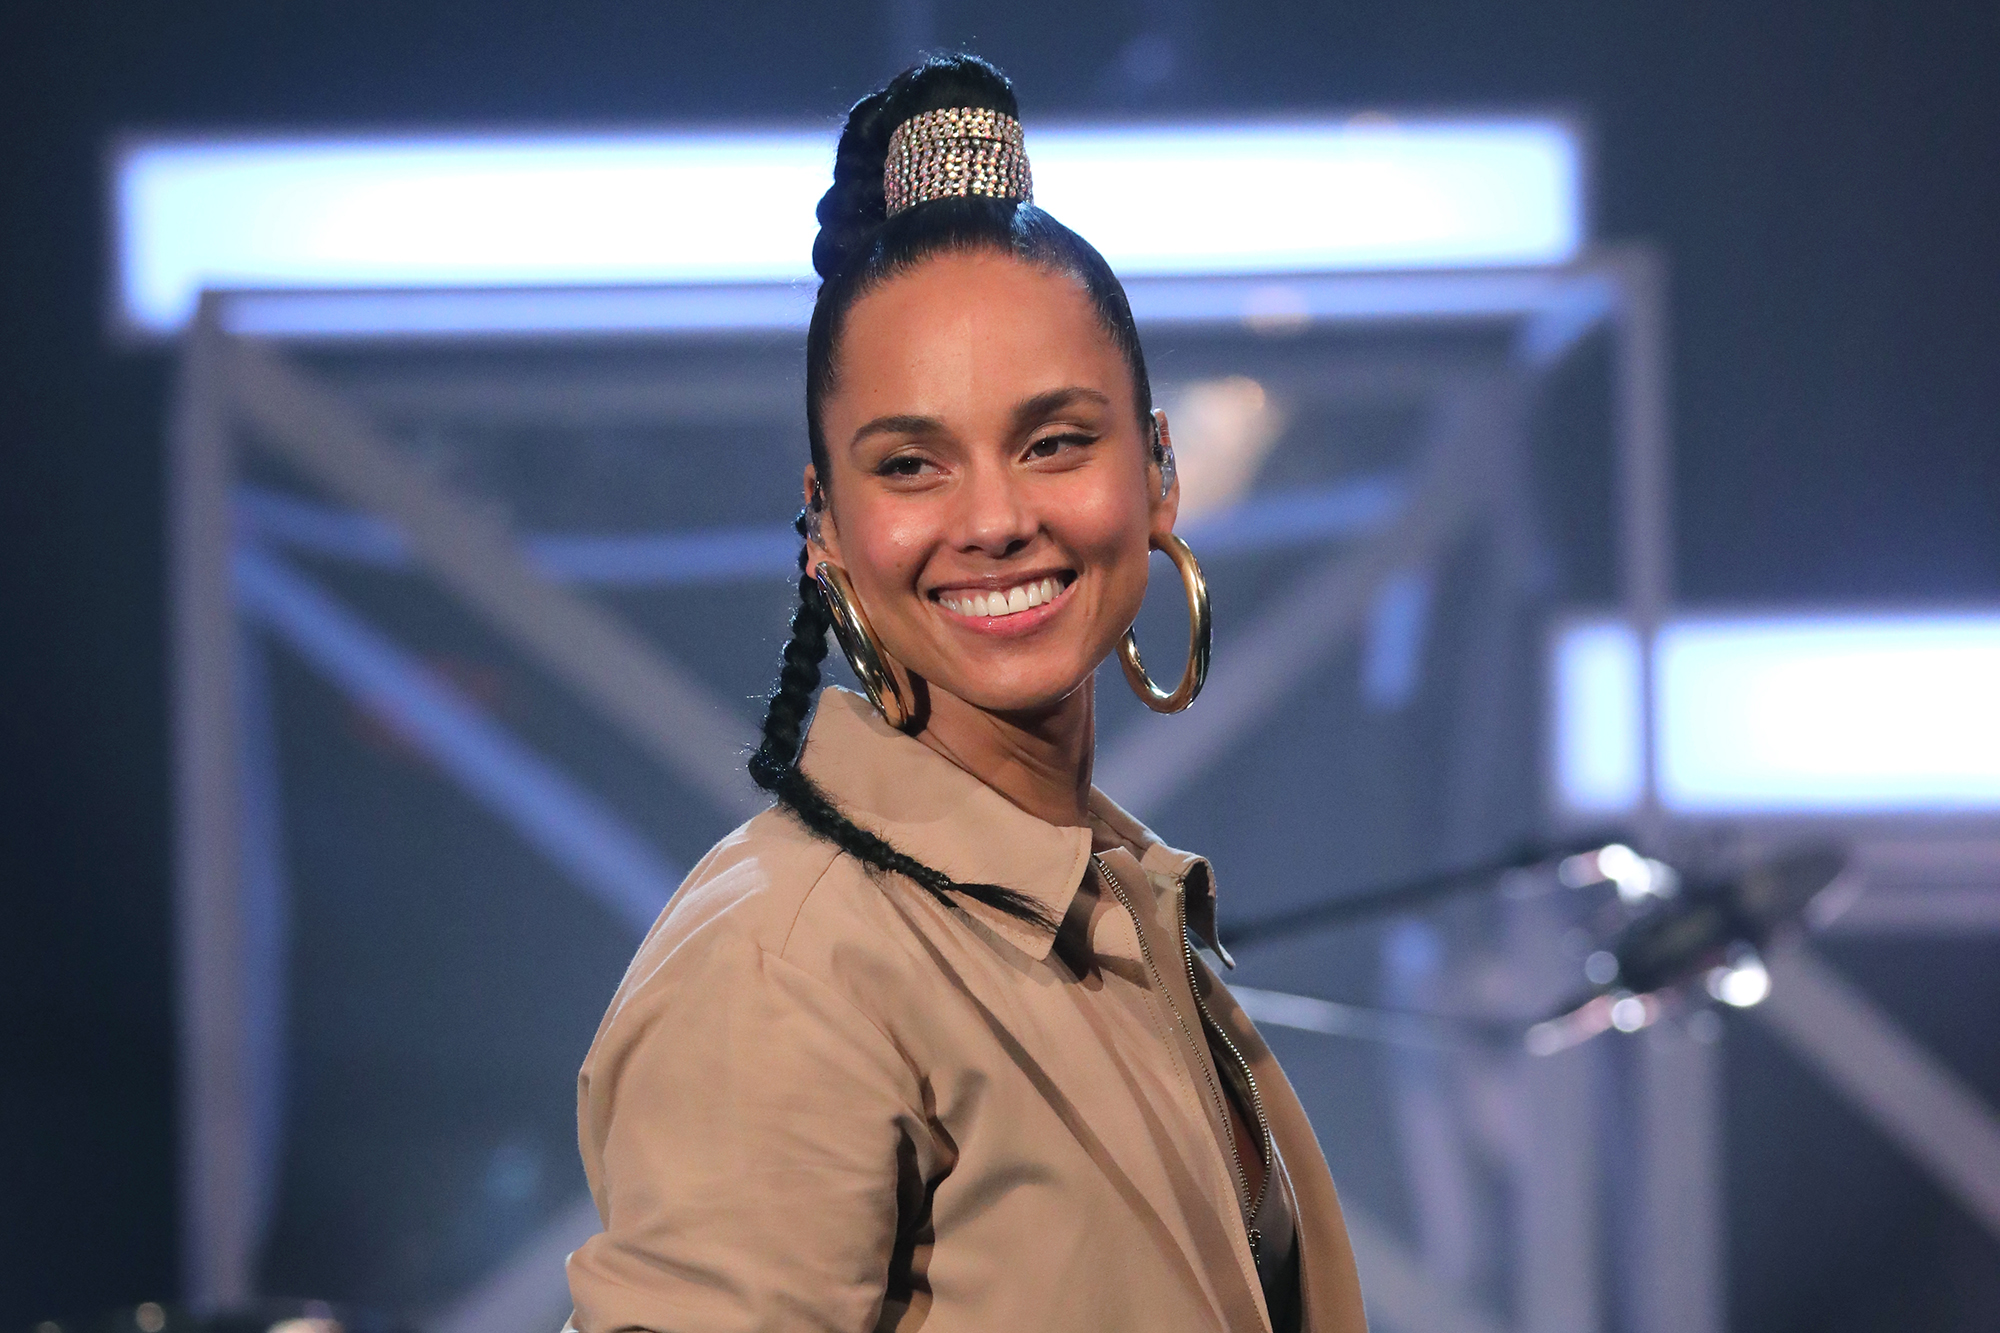 What's Up With Alicia Keys In 2020?